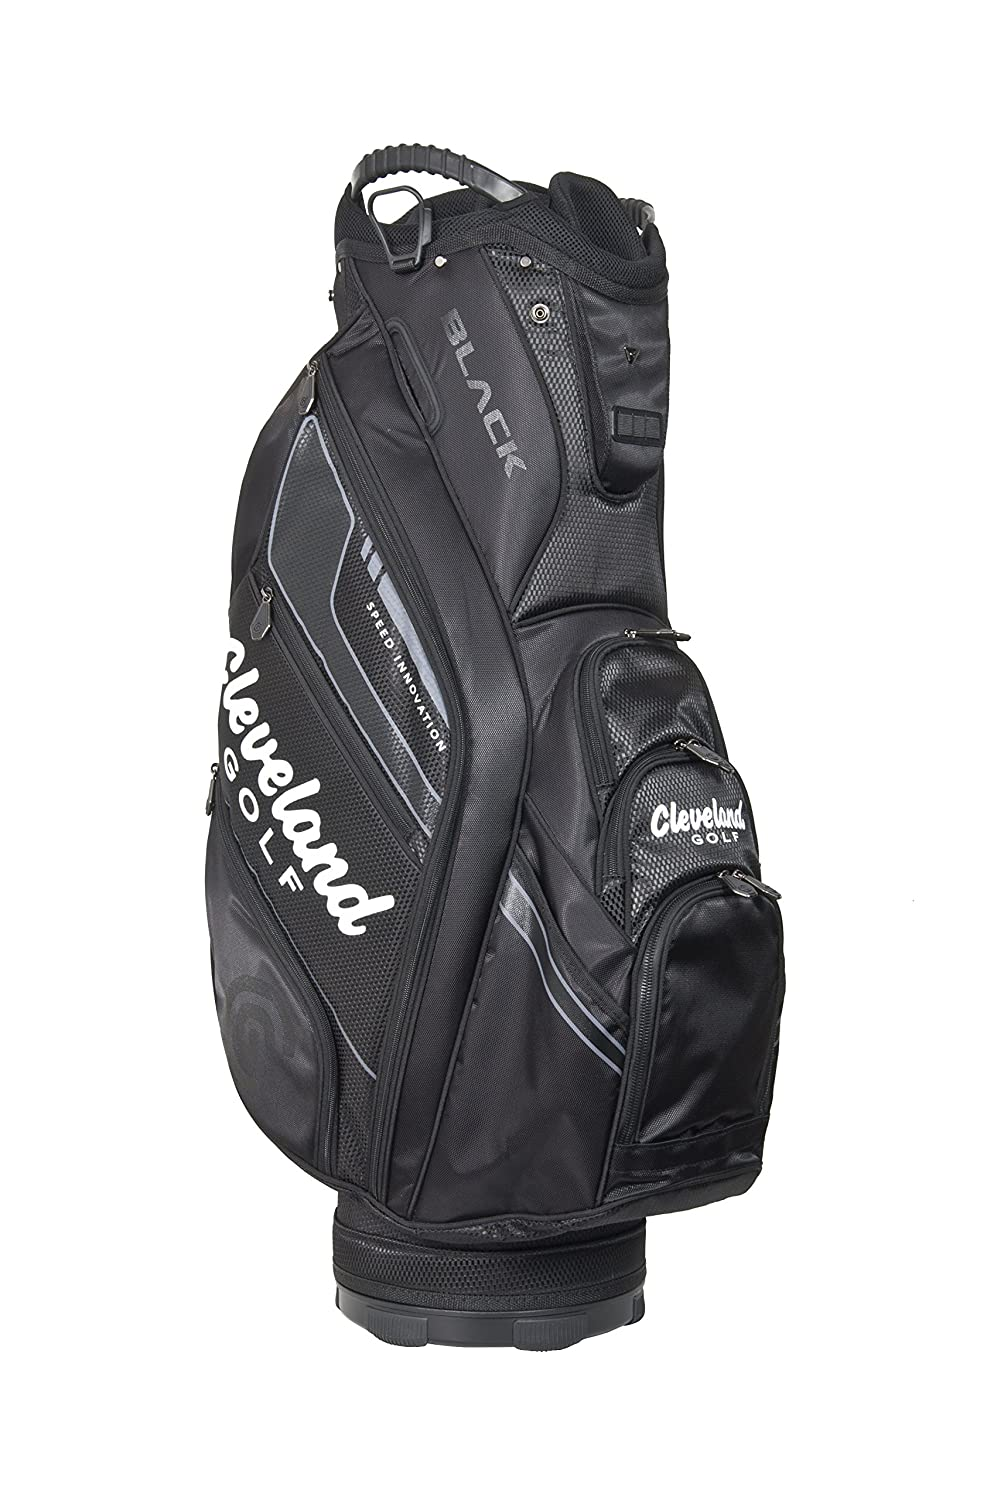 Cleveland CG Black Cart Bag - Bolsa para carro de golf, color negro